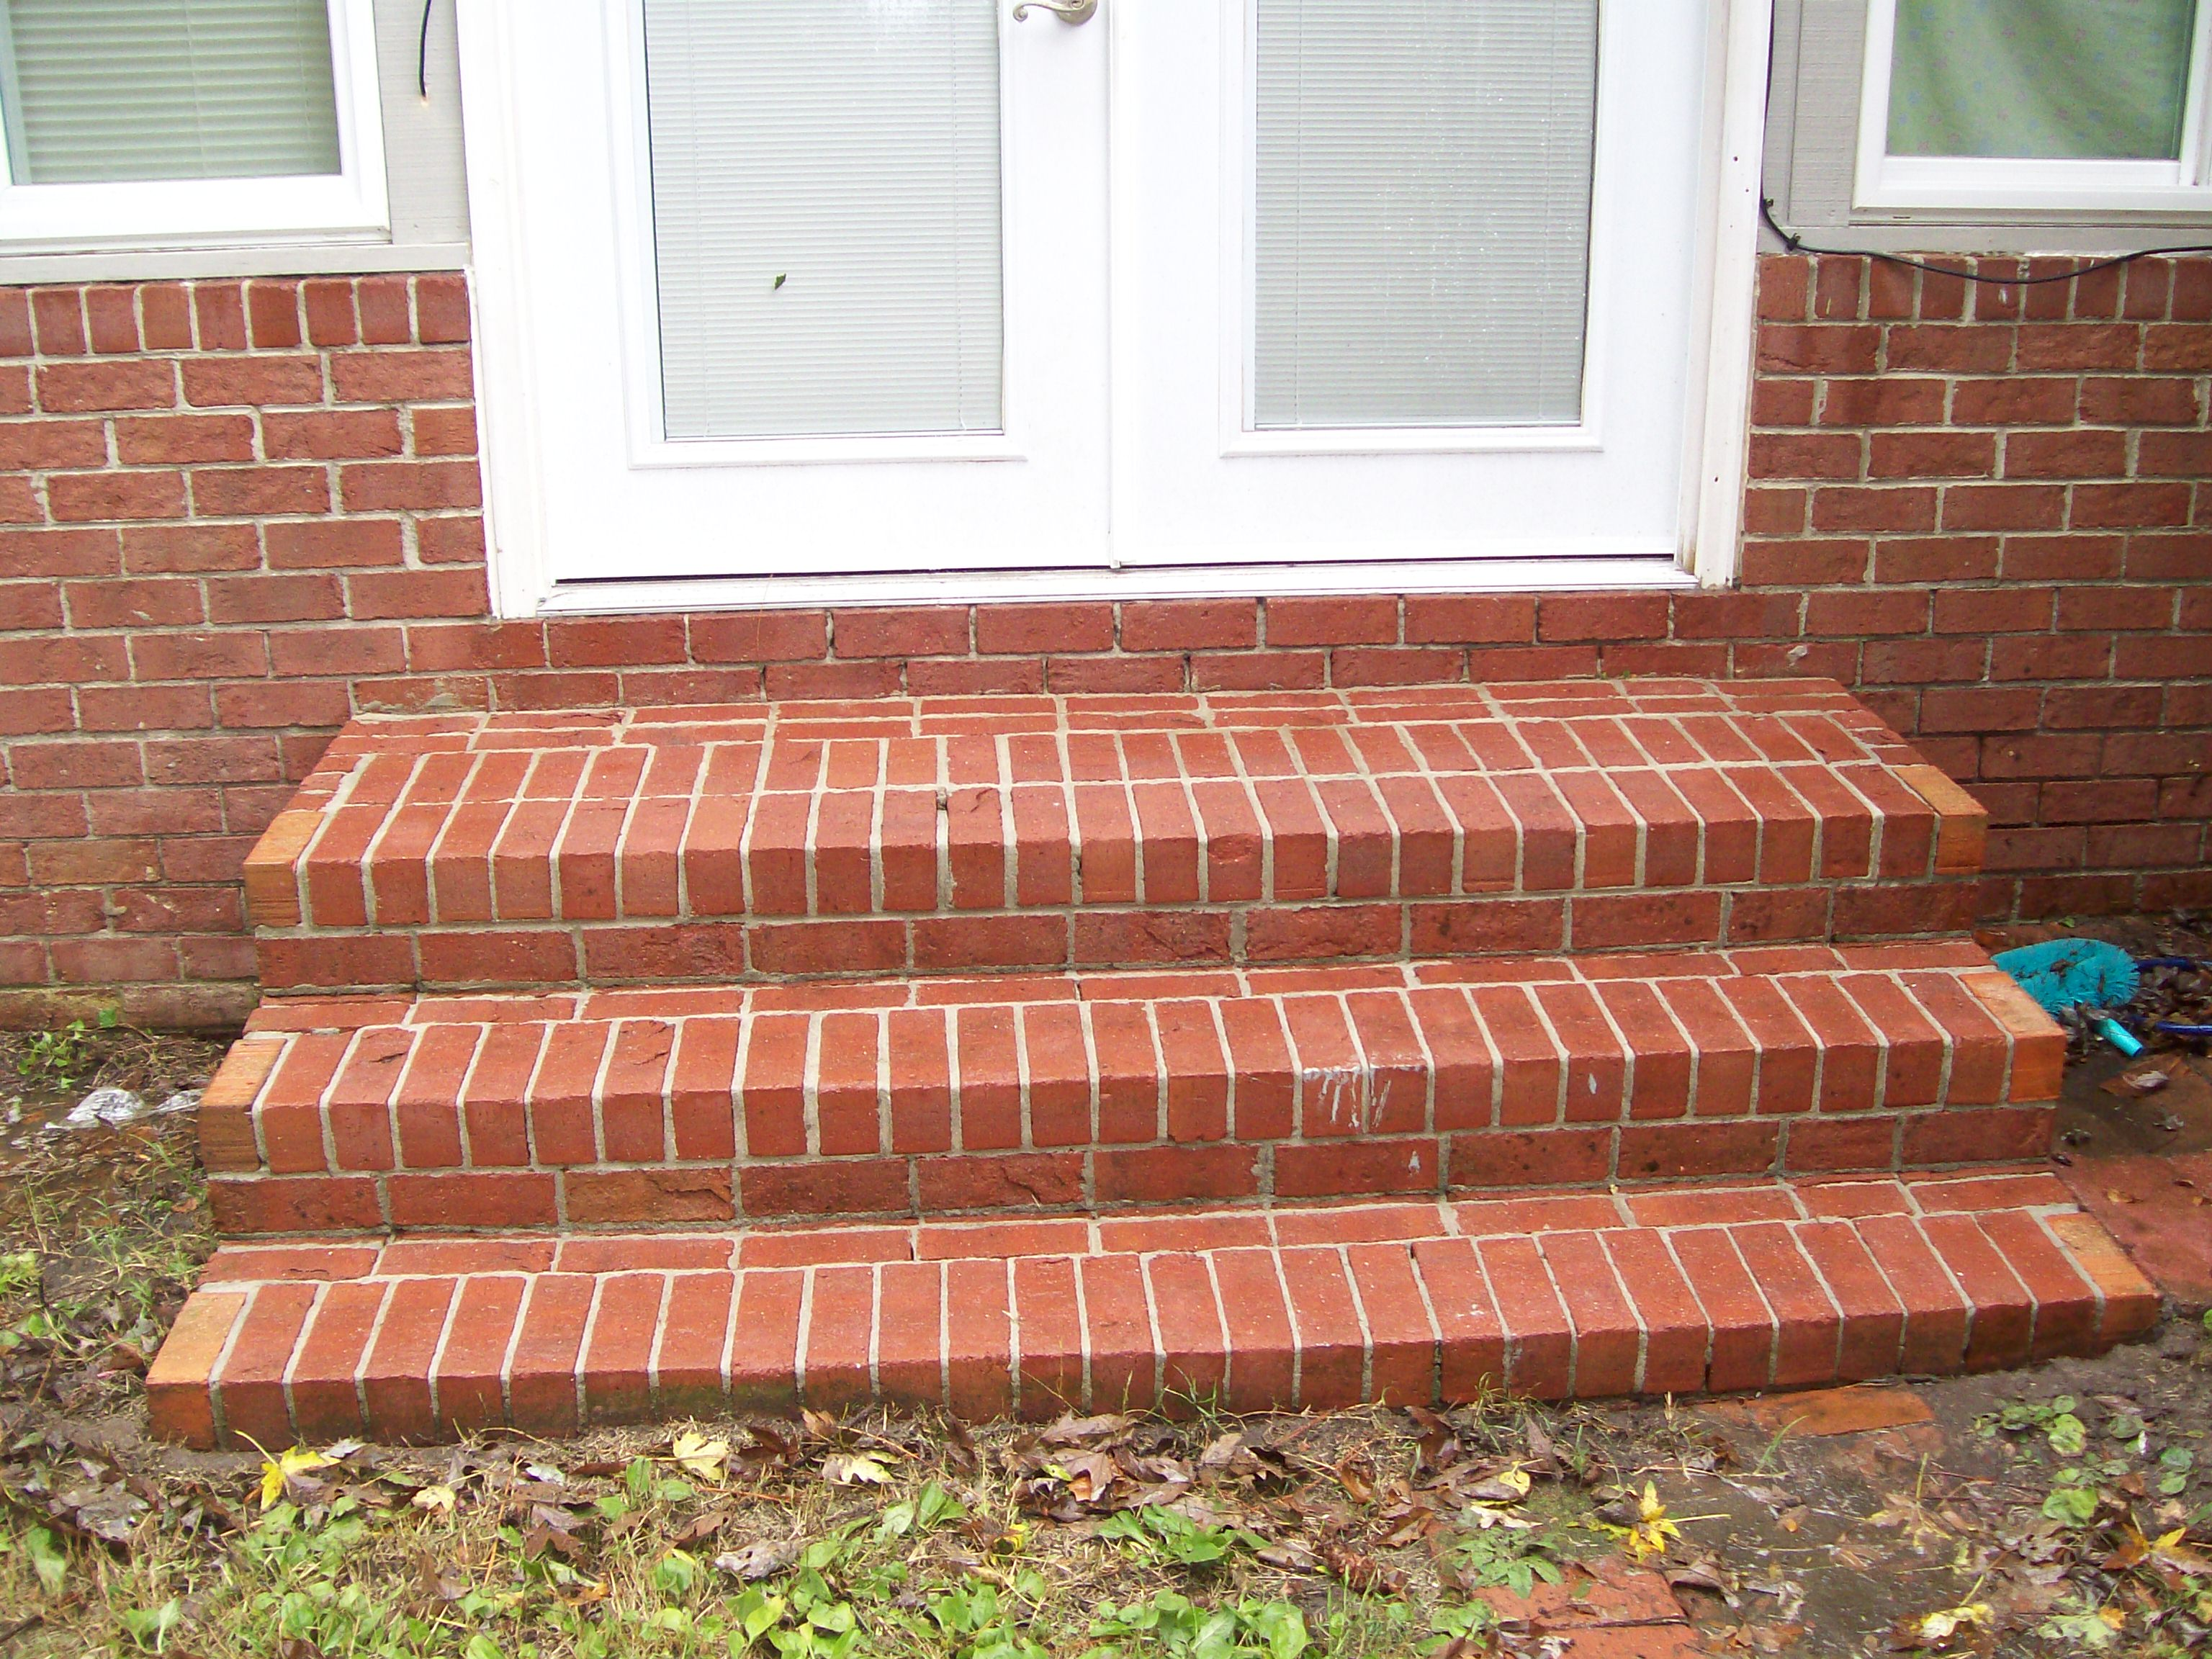 Photo gallery powerwash landscaping for How to build a brick house step by step pdf